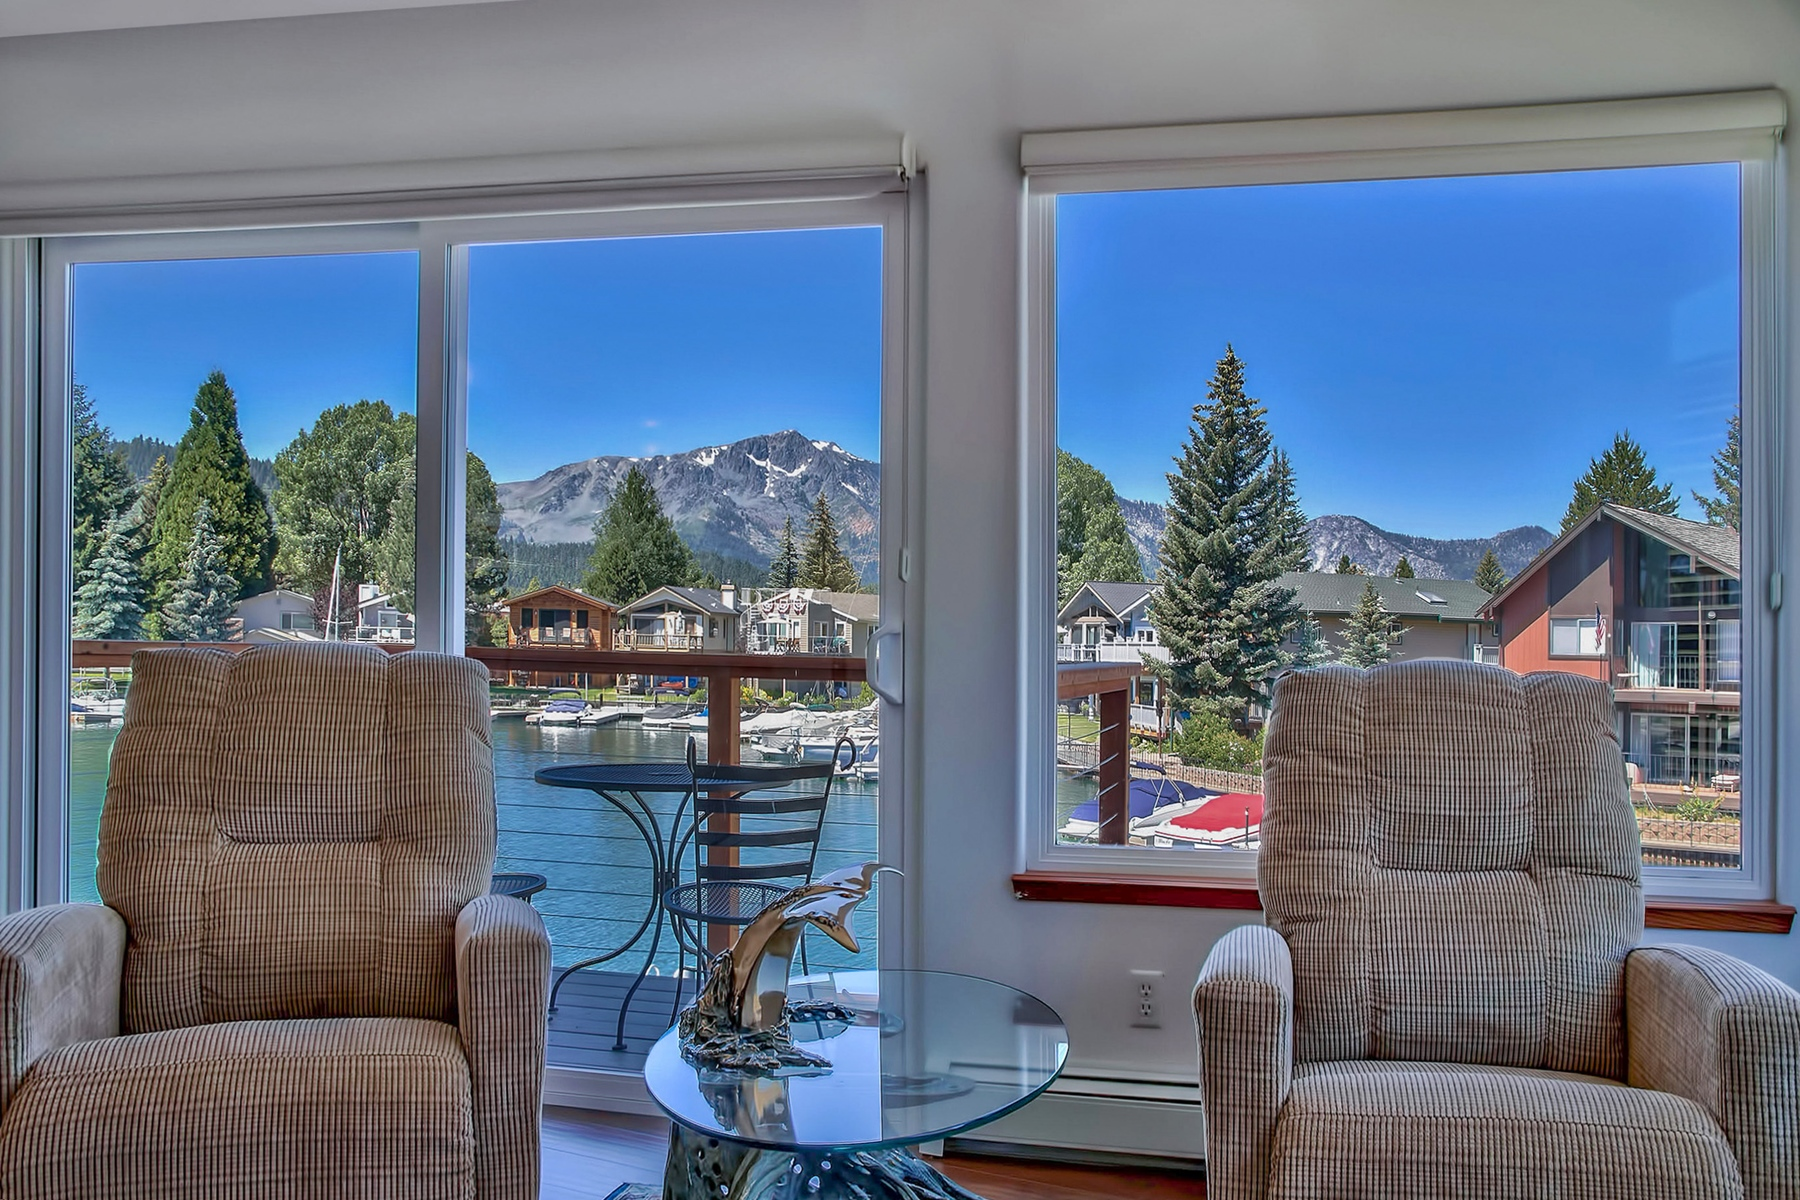 Additional photo for property listing at 408 Christie Drive, South Lake Tahoe CA 96150 408 Christie Drive South Lake Tahoe, California 96150 United States